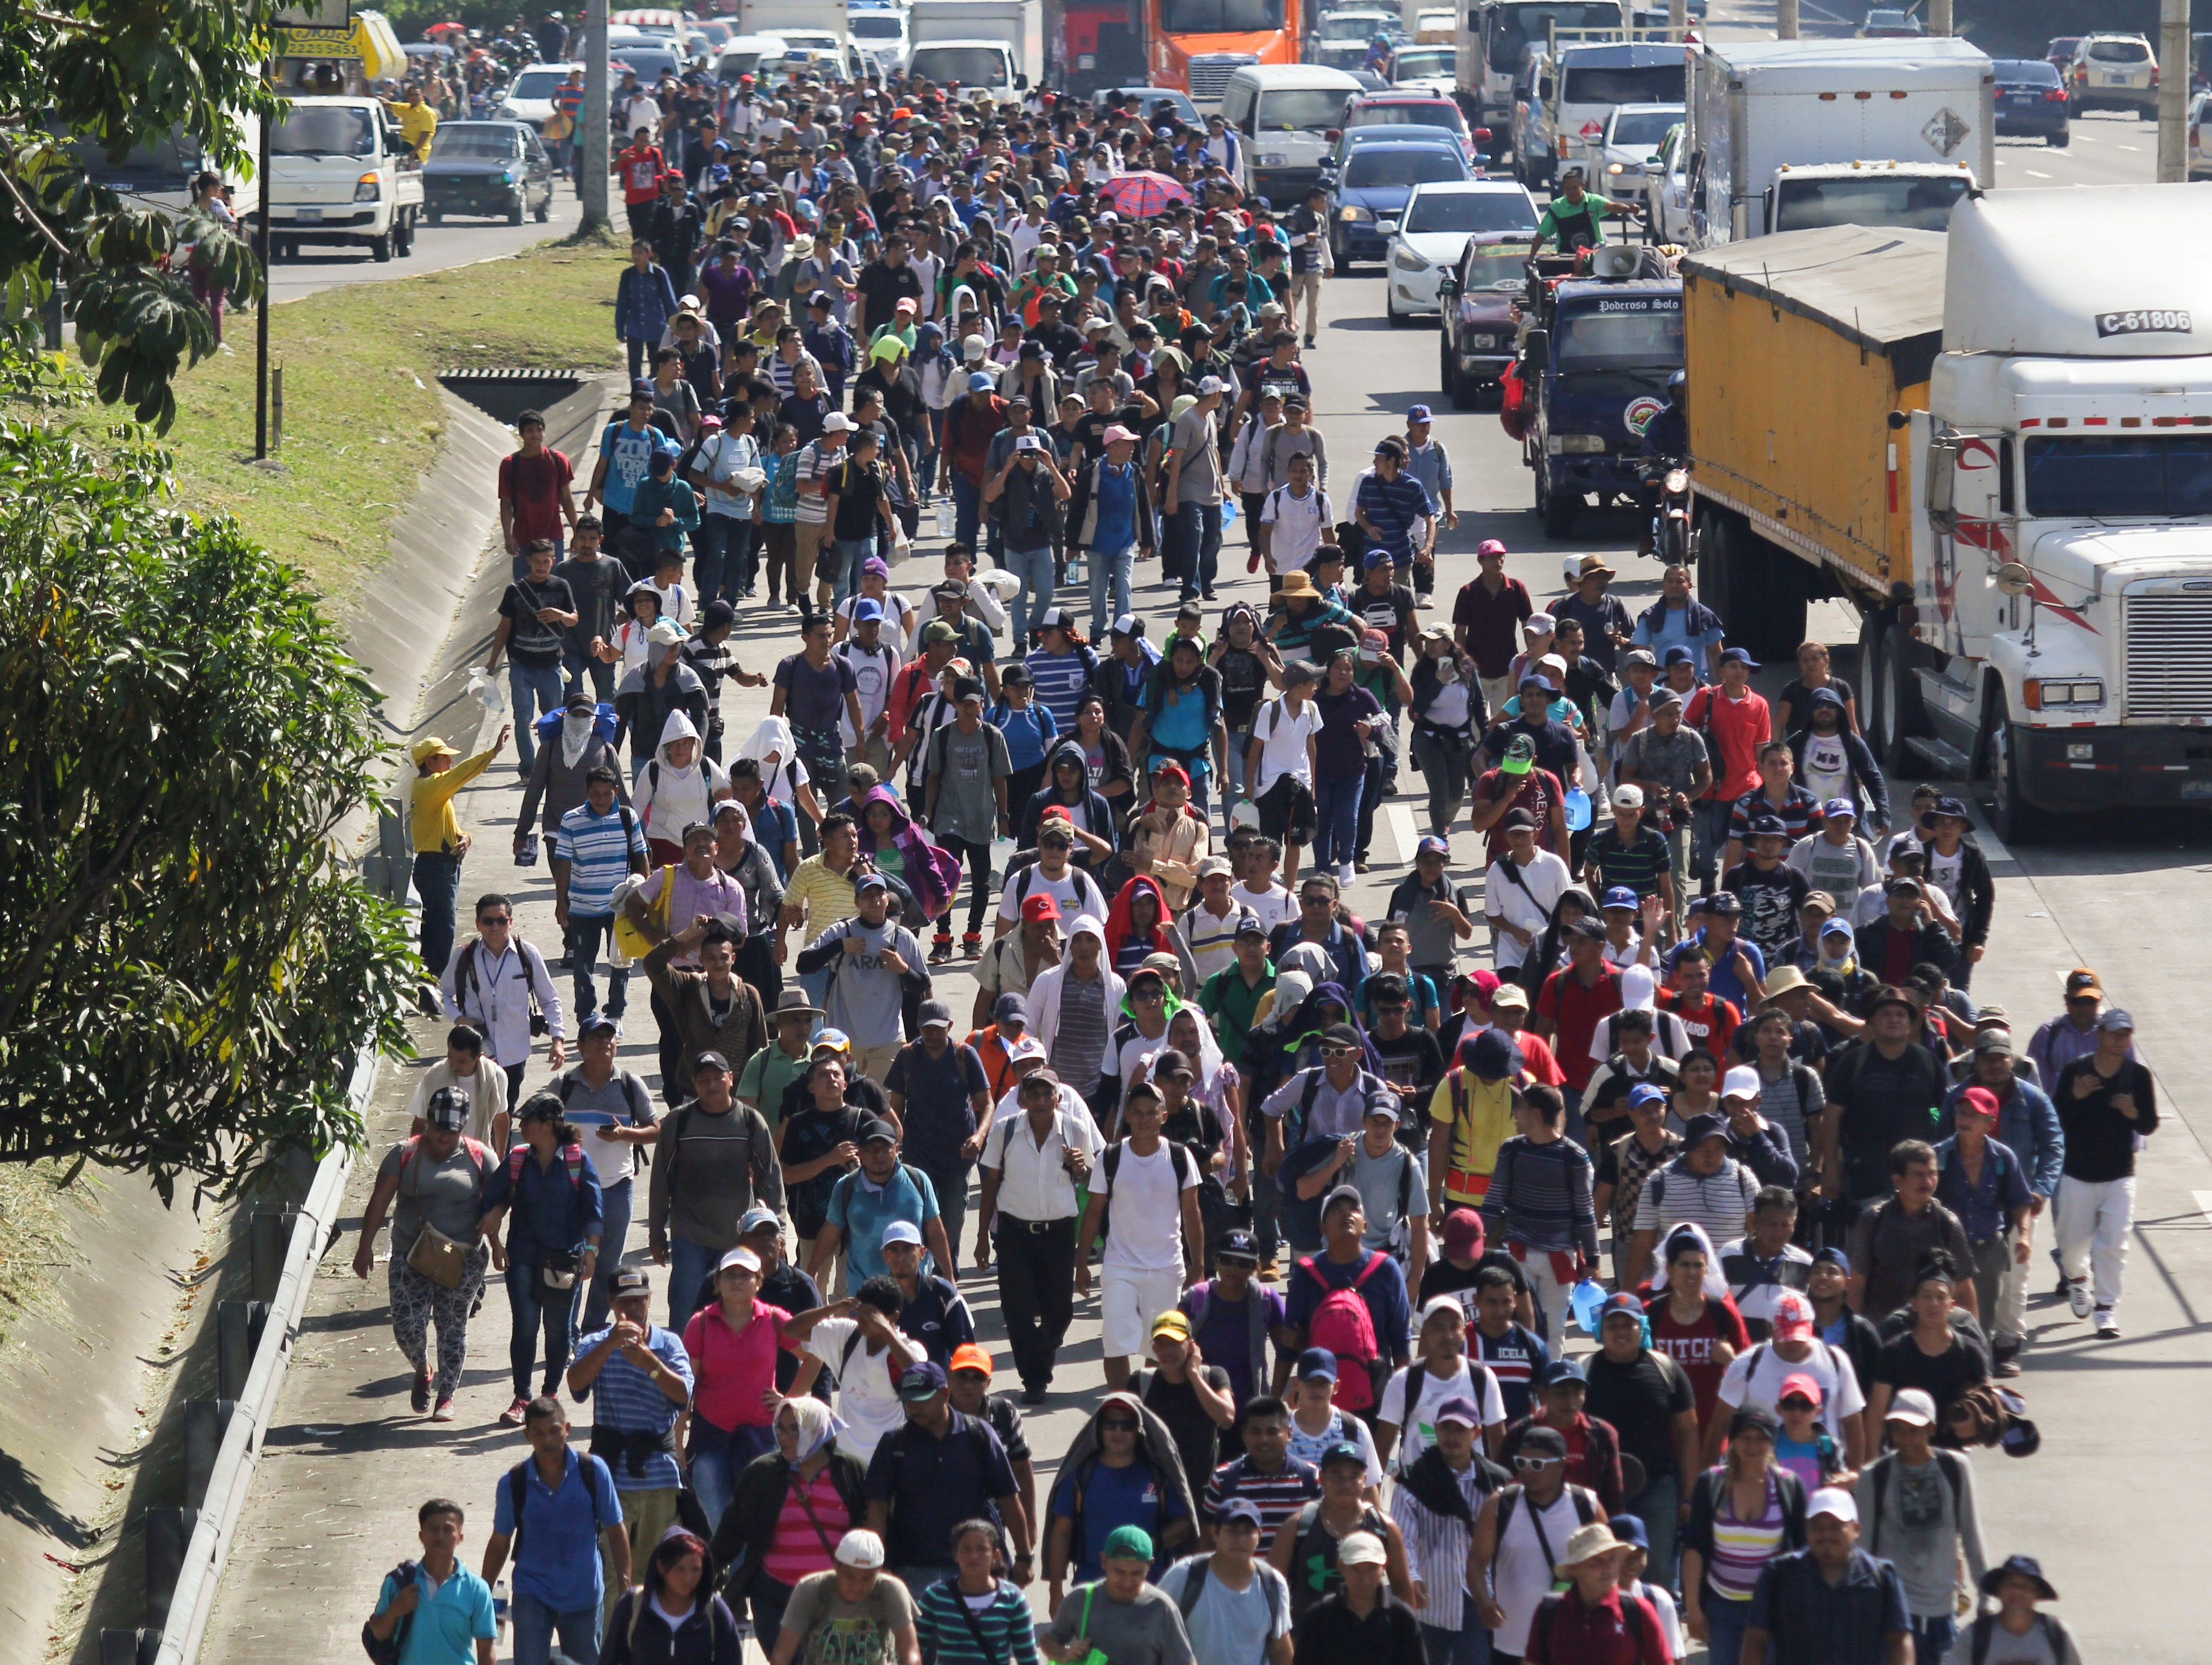 Migrants from El Salvador start on their way to the United States, in San Salvador, El Salvador, Wednesday, Oct. 31, 2018.